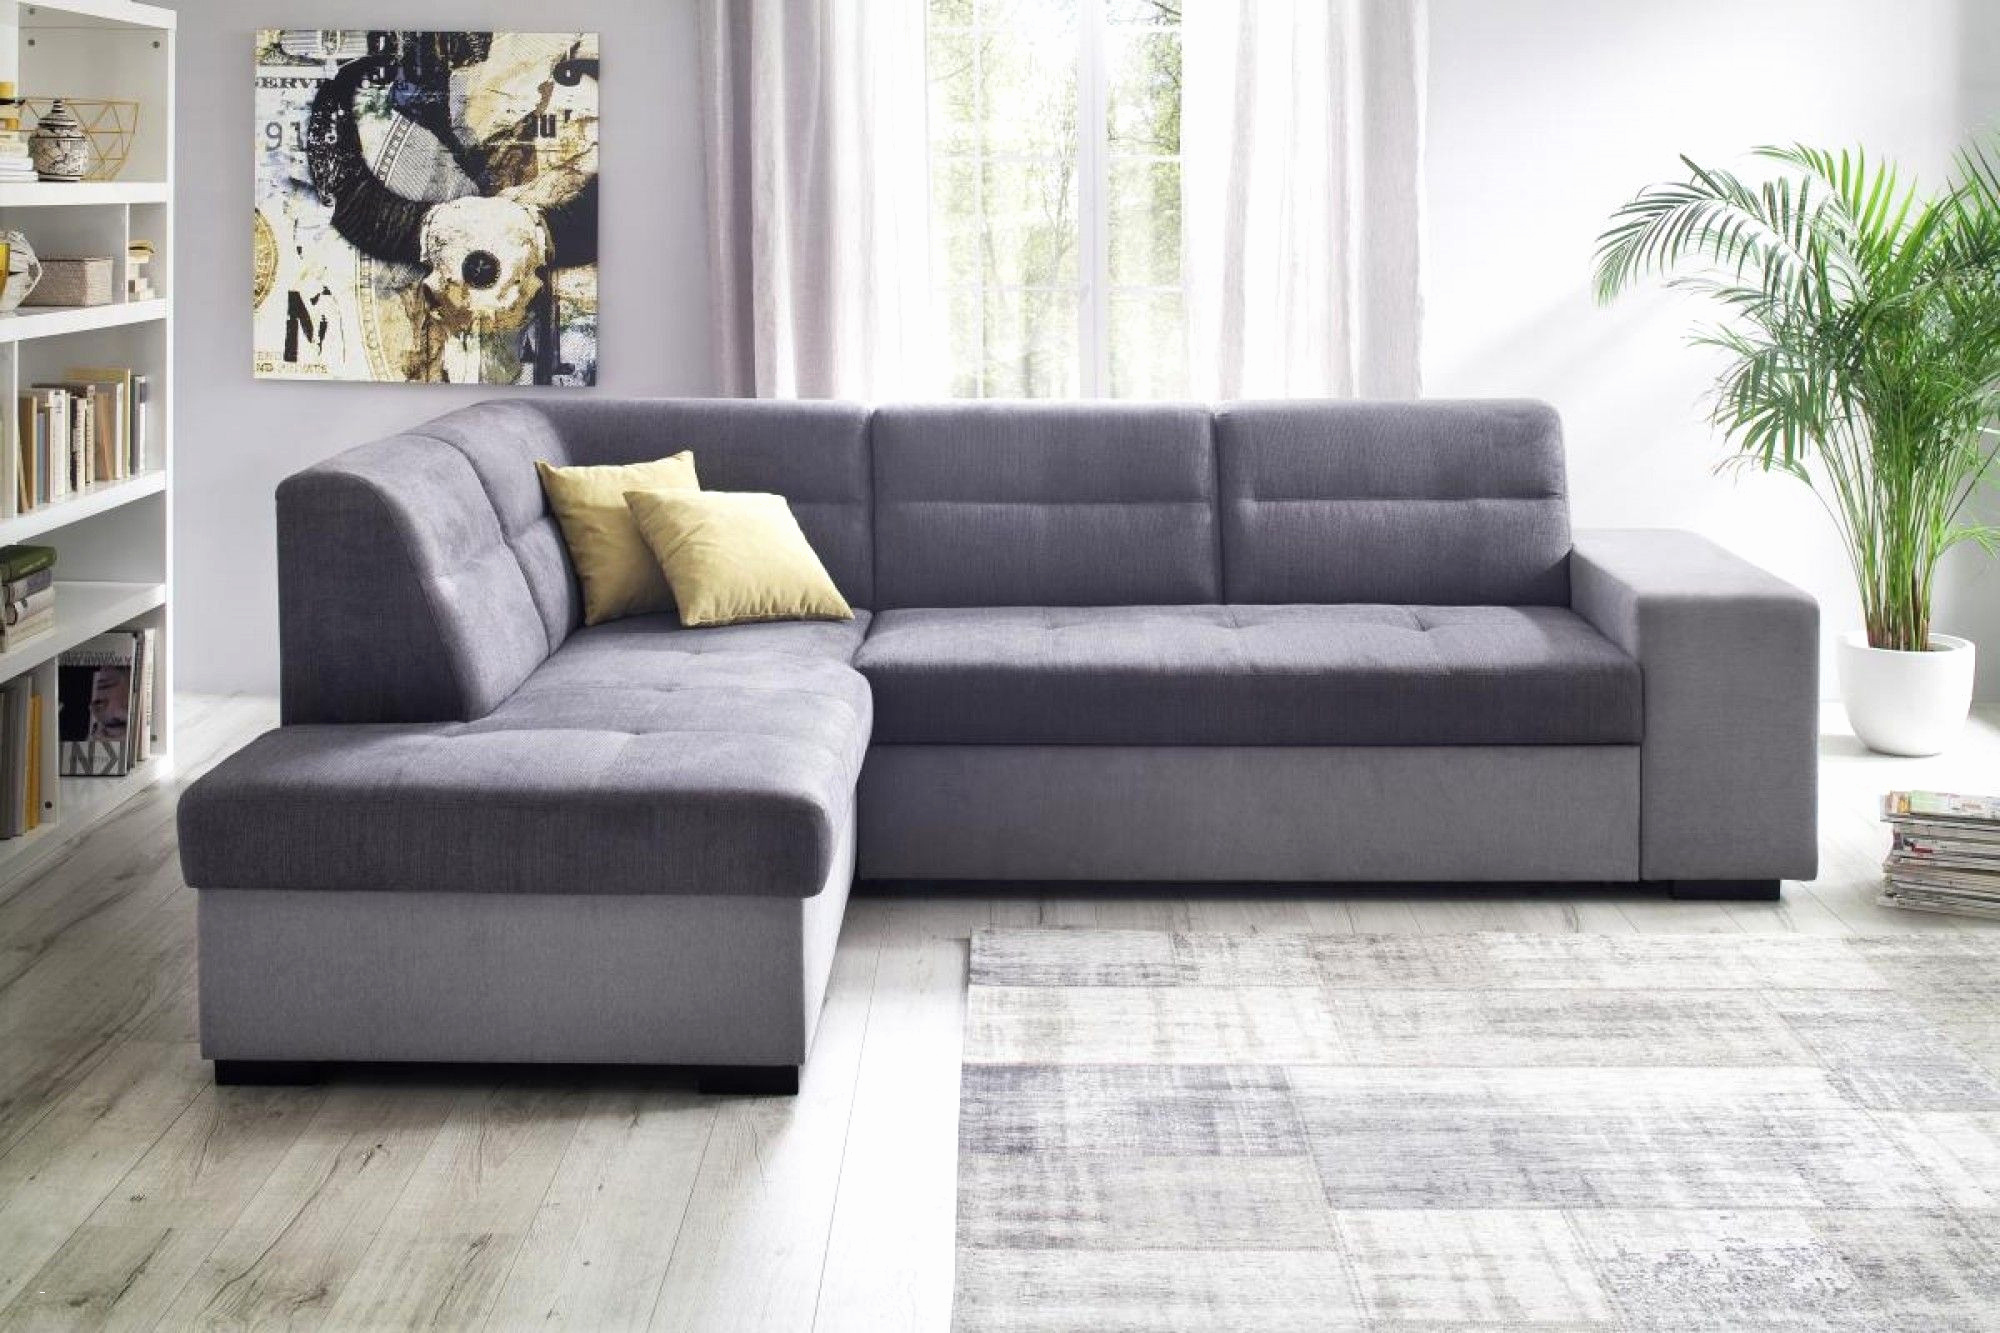 Housse Canape Ikea Ancien Modele Inspirant Image 51 Lovely Small Sectional sofa Ikea 51 S